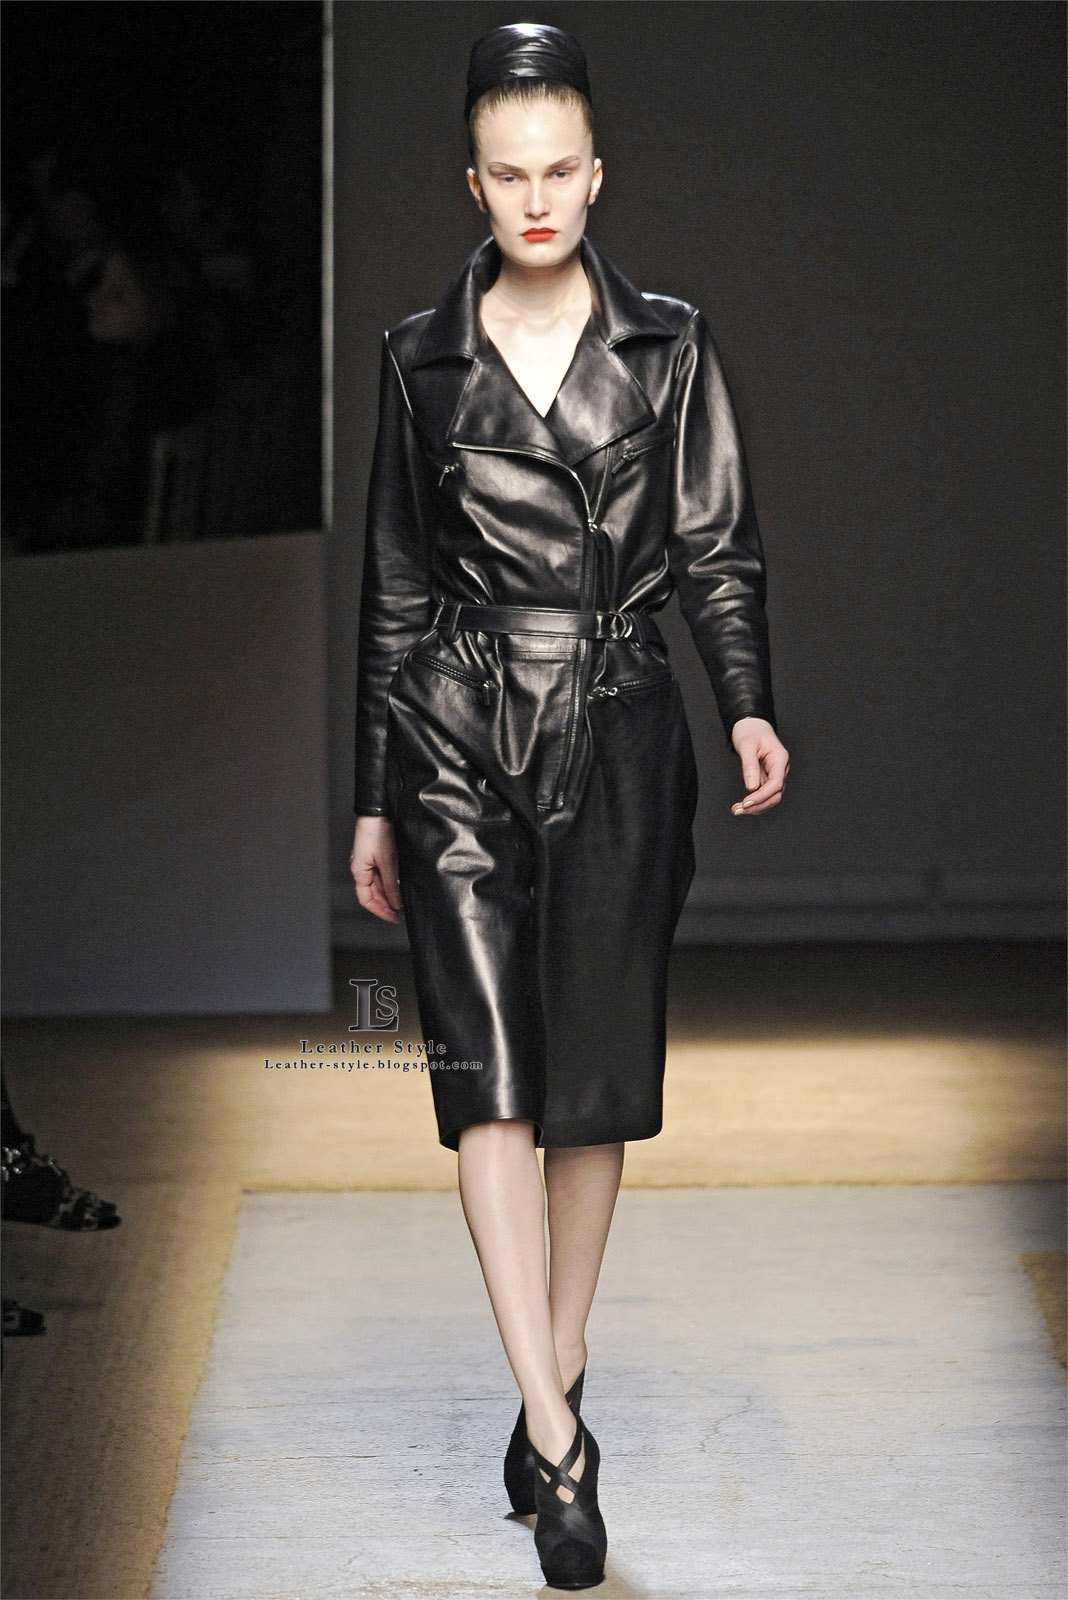 Leather style, latex couture, vinyl fashion: designers ...